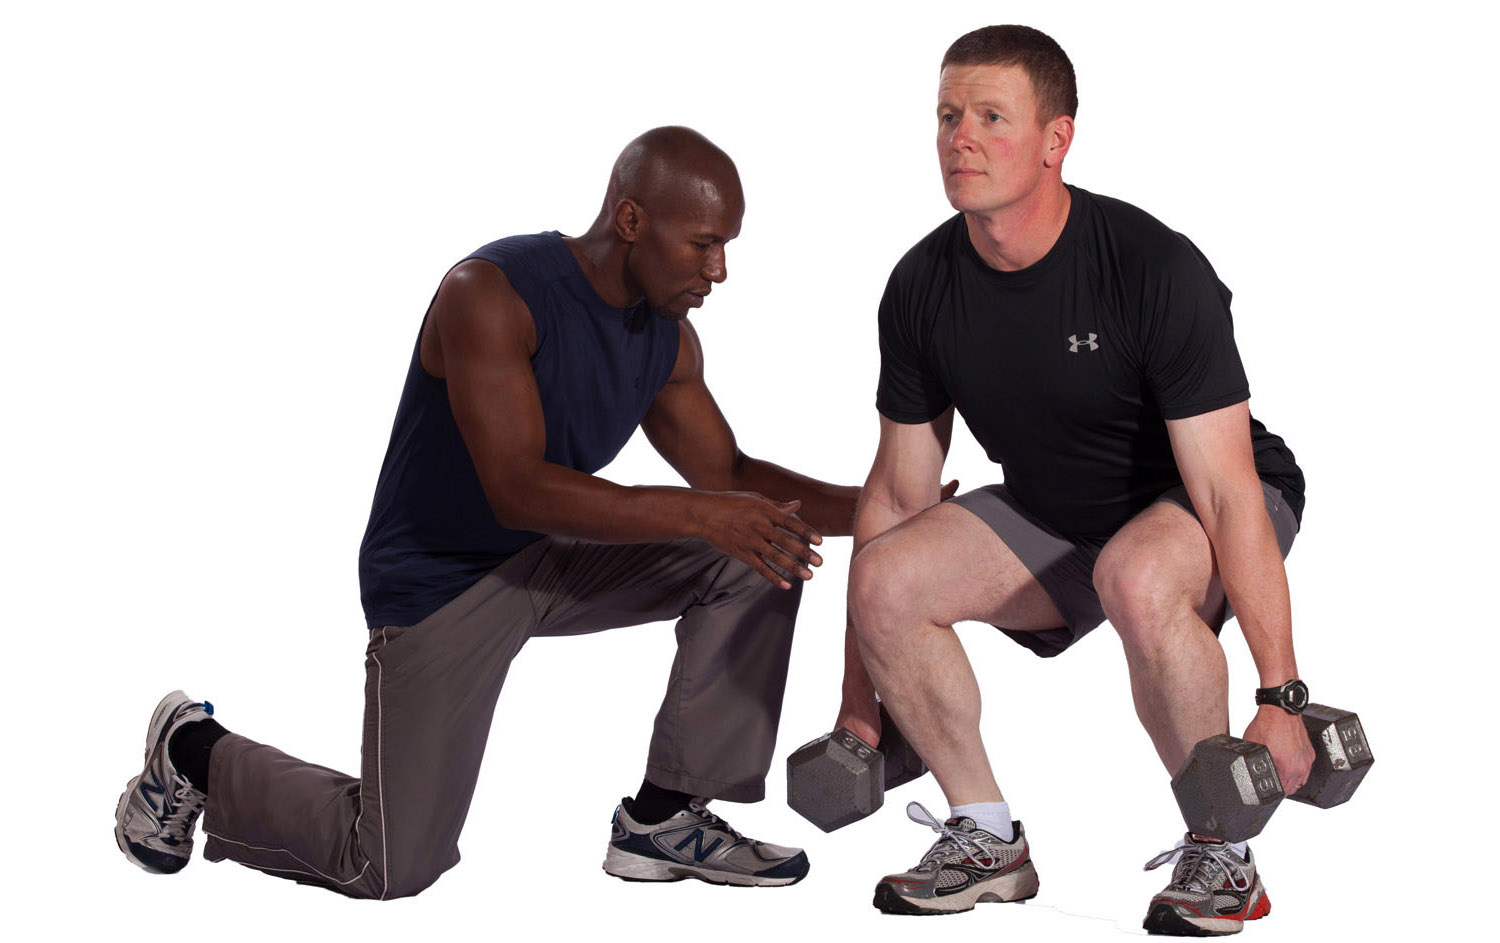 michael-flanagan-personal-trainer-fairbanks-alaska-with-male-client-lifting-weights-web.jpg